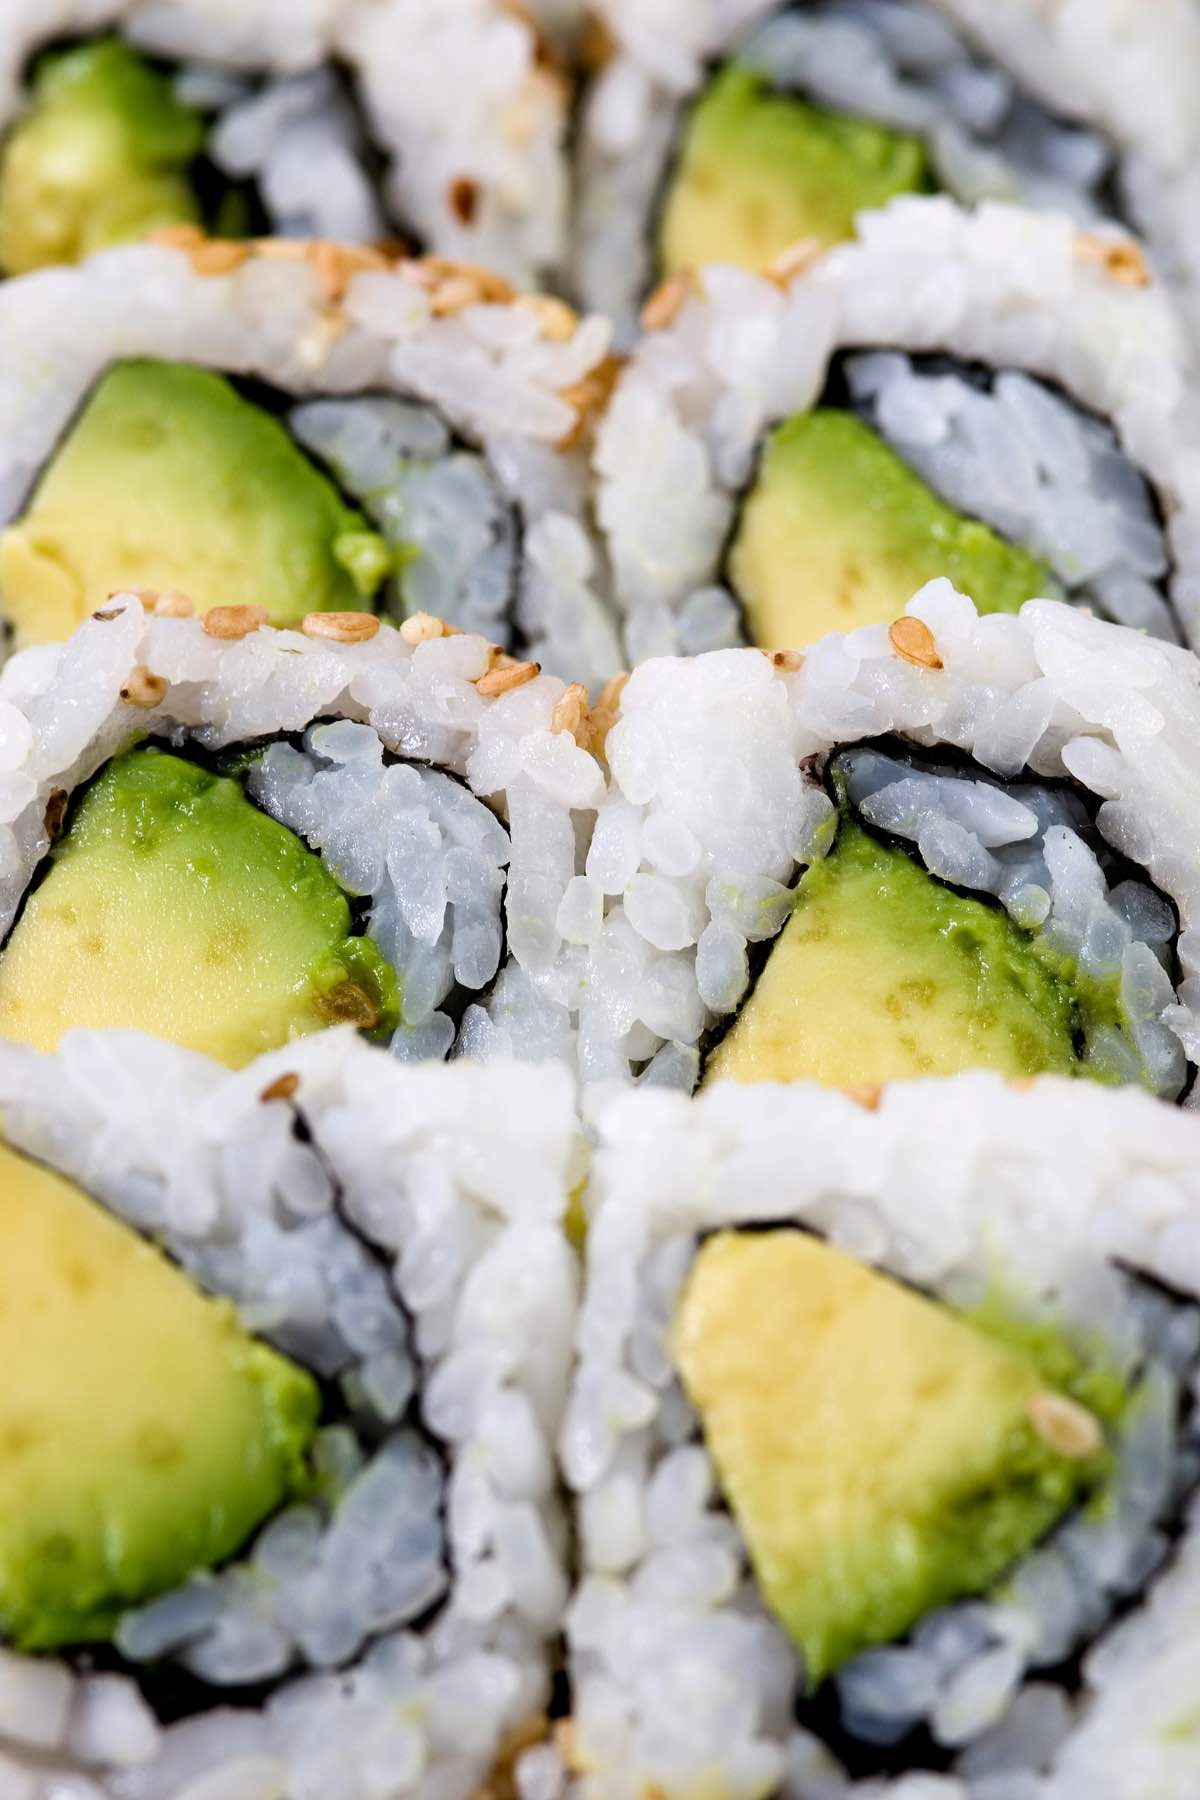 n of the popular California Roll. There's something so satisfying about making your own sushi at home. Not only is it much cheaper than going to a restaurant, it's also a super fun skill to learn! This creamy and delicious avocado roll recipe calls for a few simple ingredients and is easy to make at hom